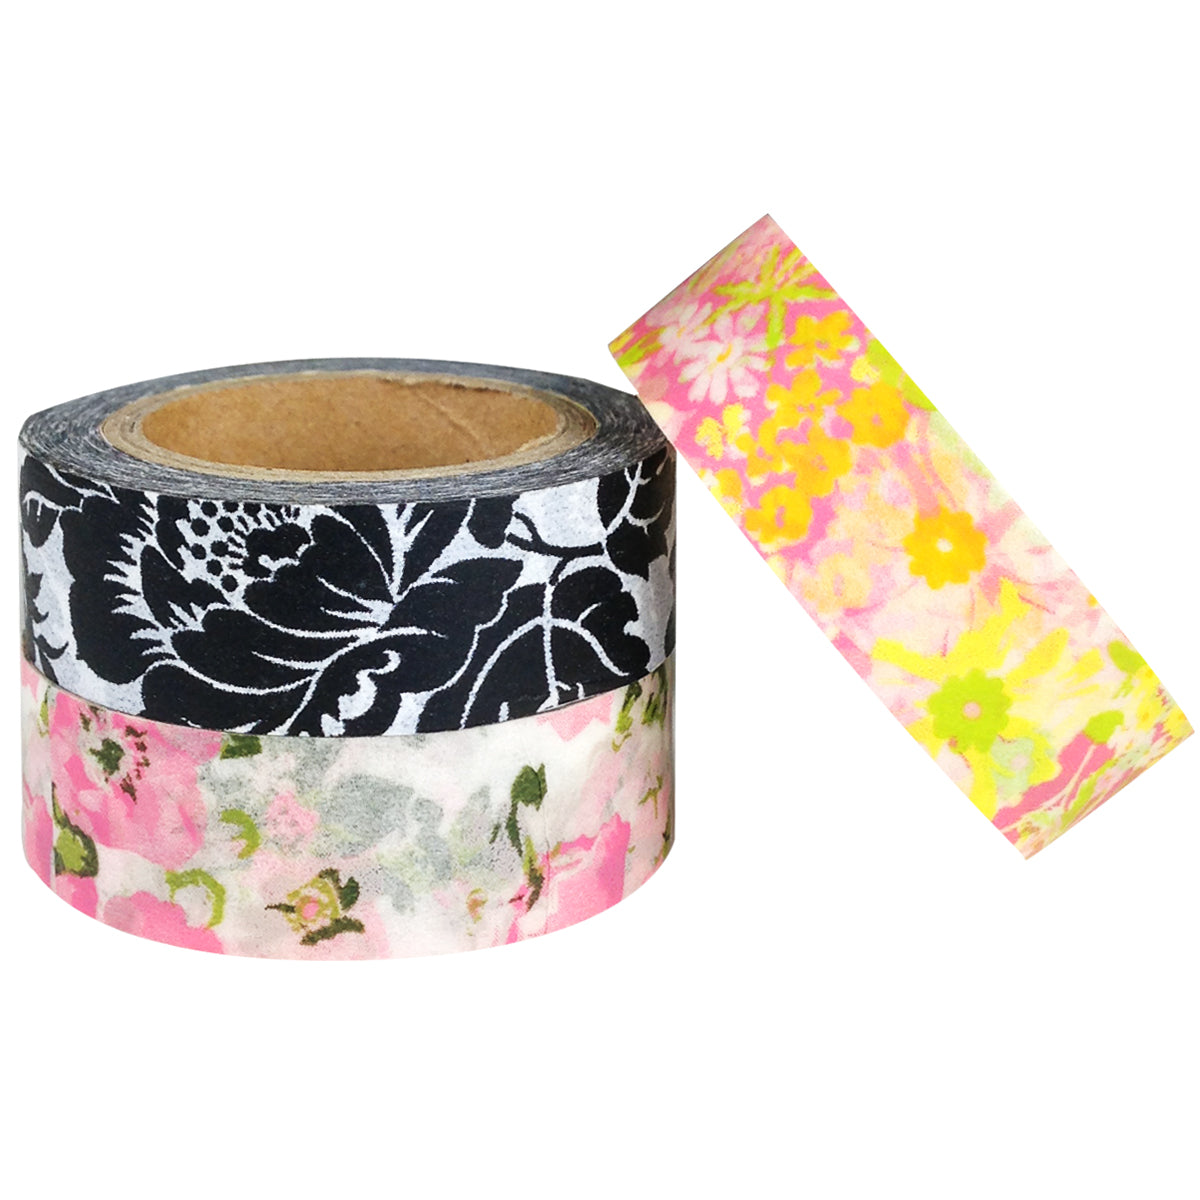 Wrapables Romantic Floral Japanese Washi Masking Tape (set of 3)